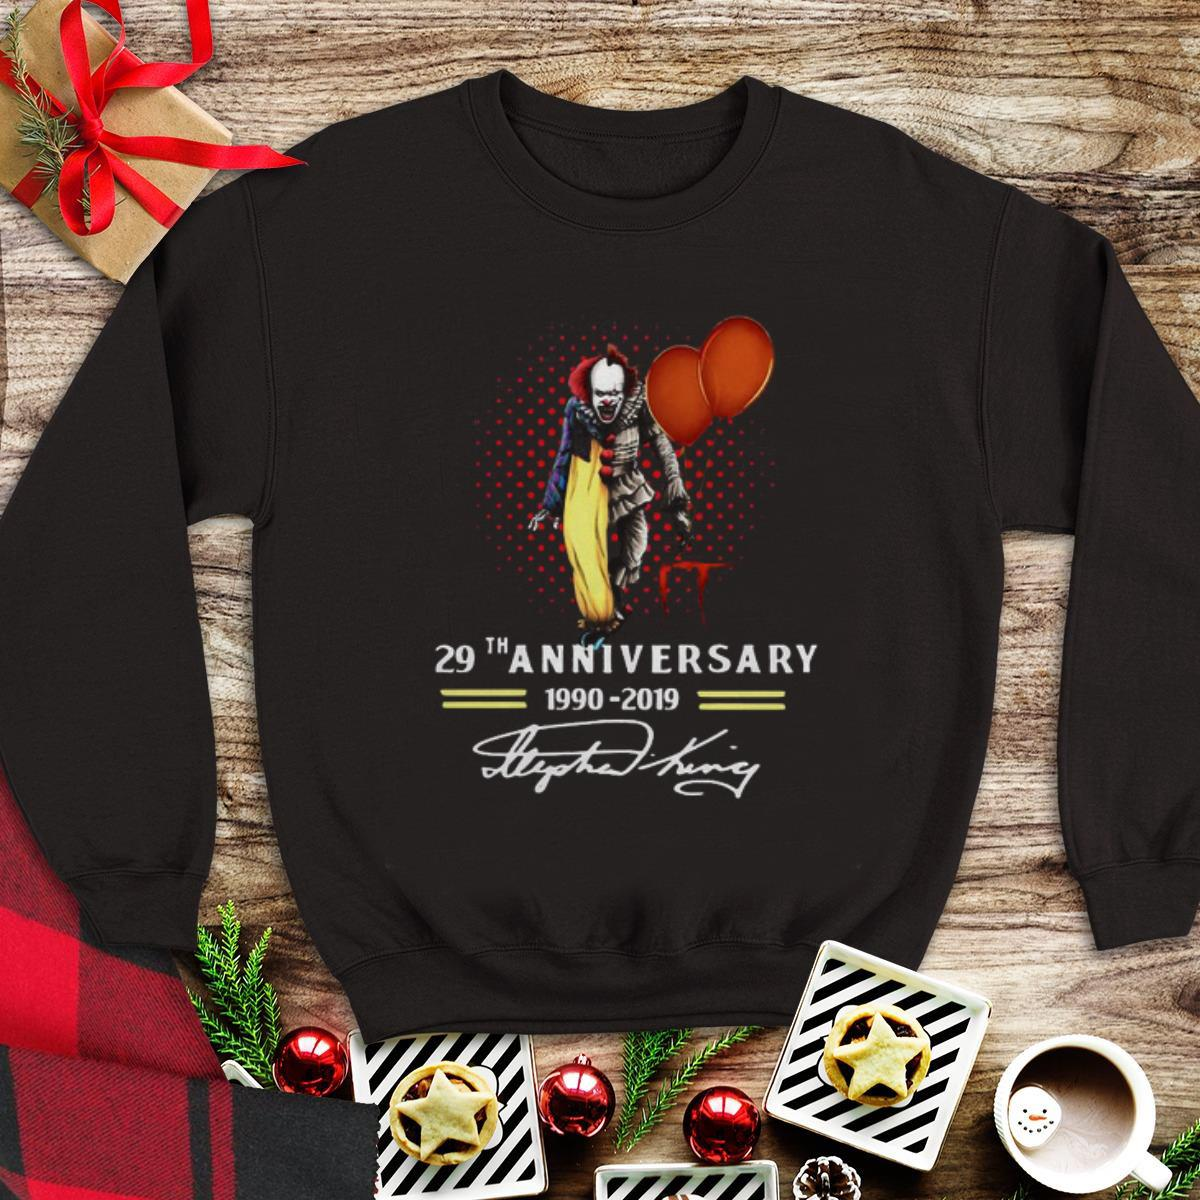 29th Anniversary 1990 2019 Pennywise IT Signatures shirt 1 - 29th Anniversary 1990-2019 Pennywise IT Signatures shirt